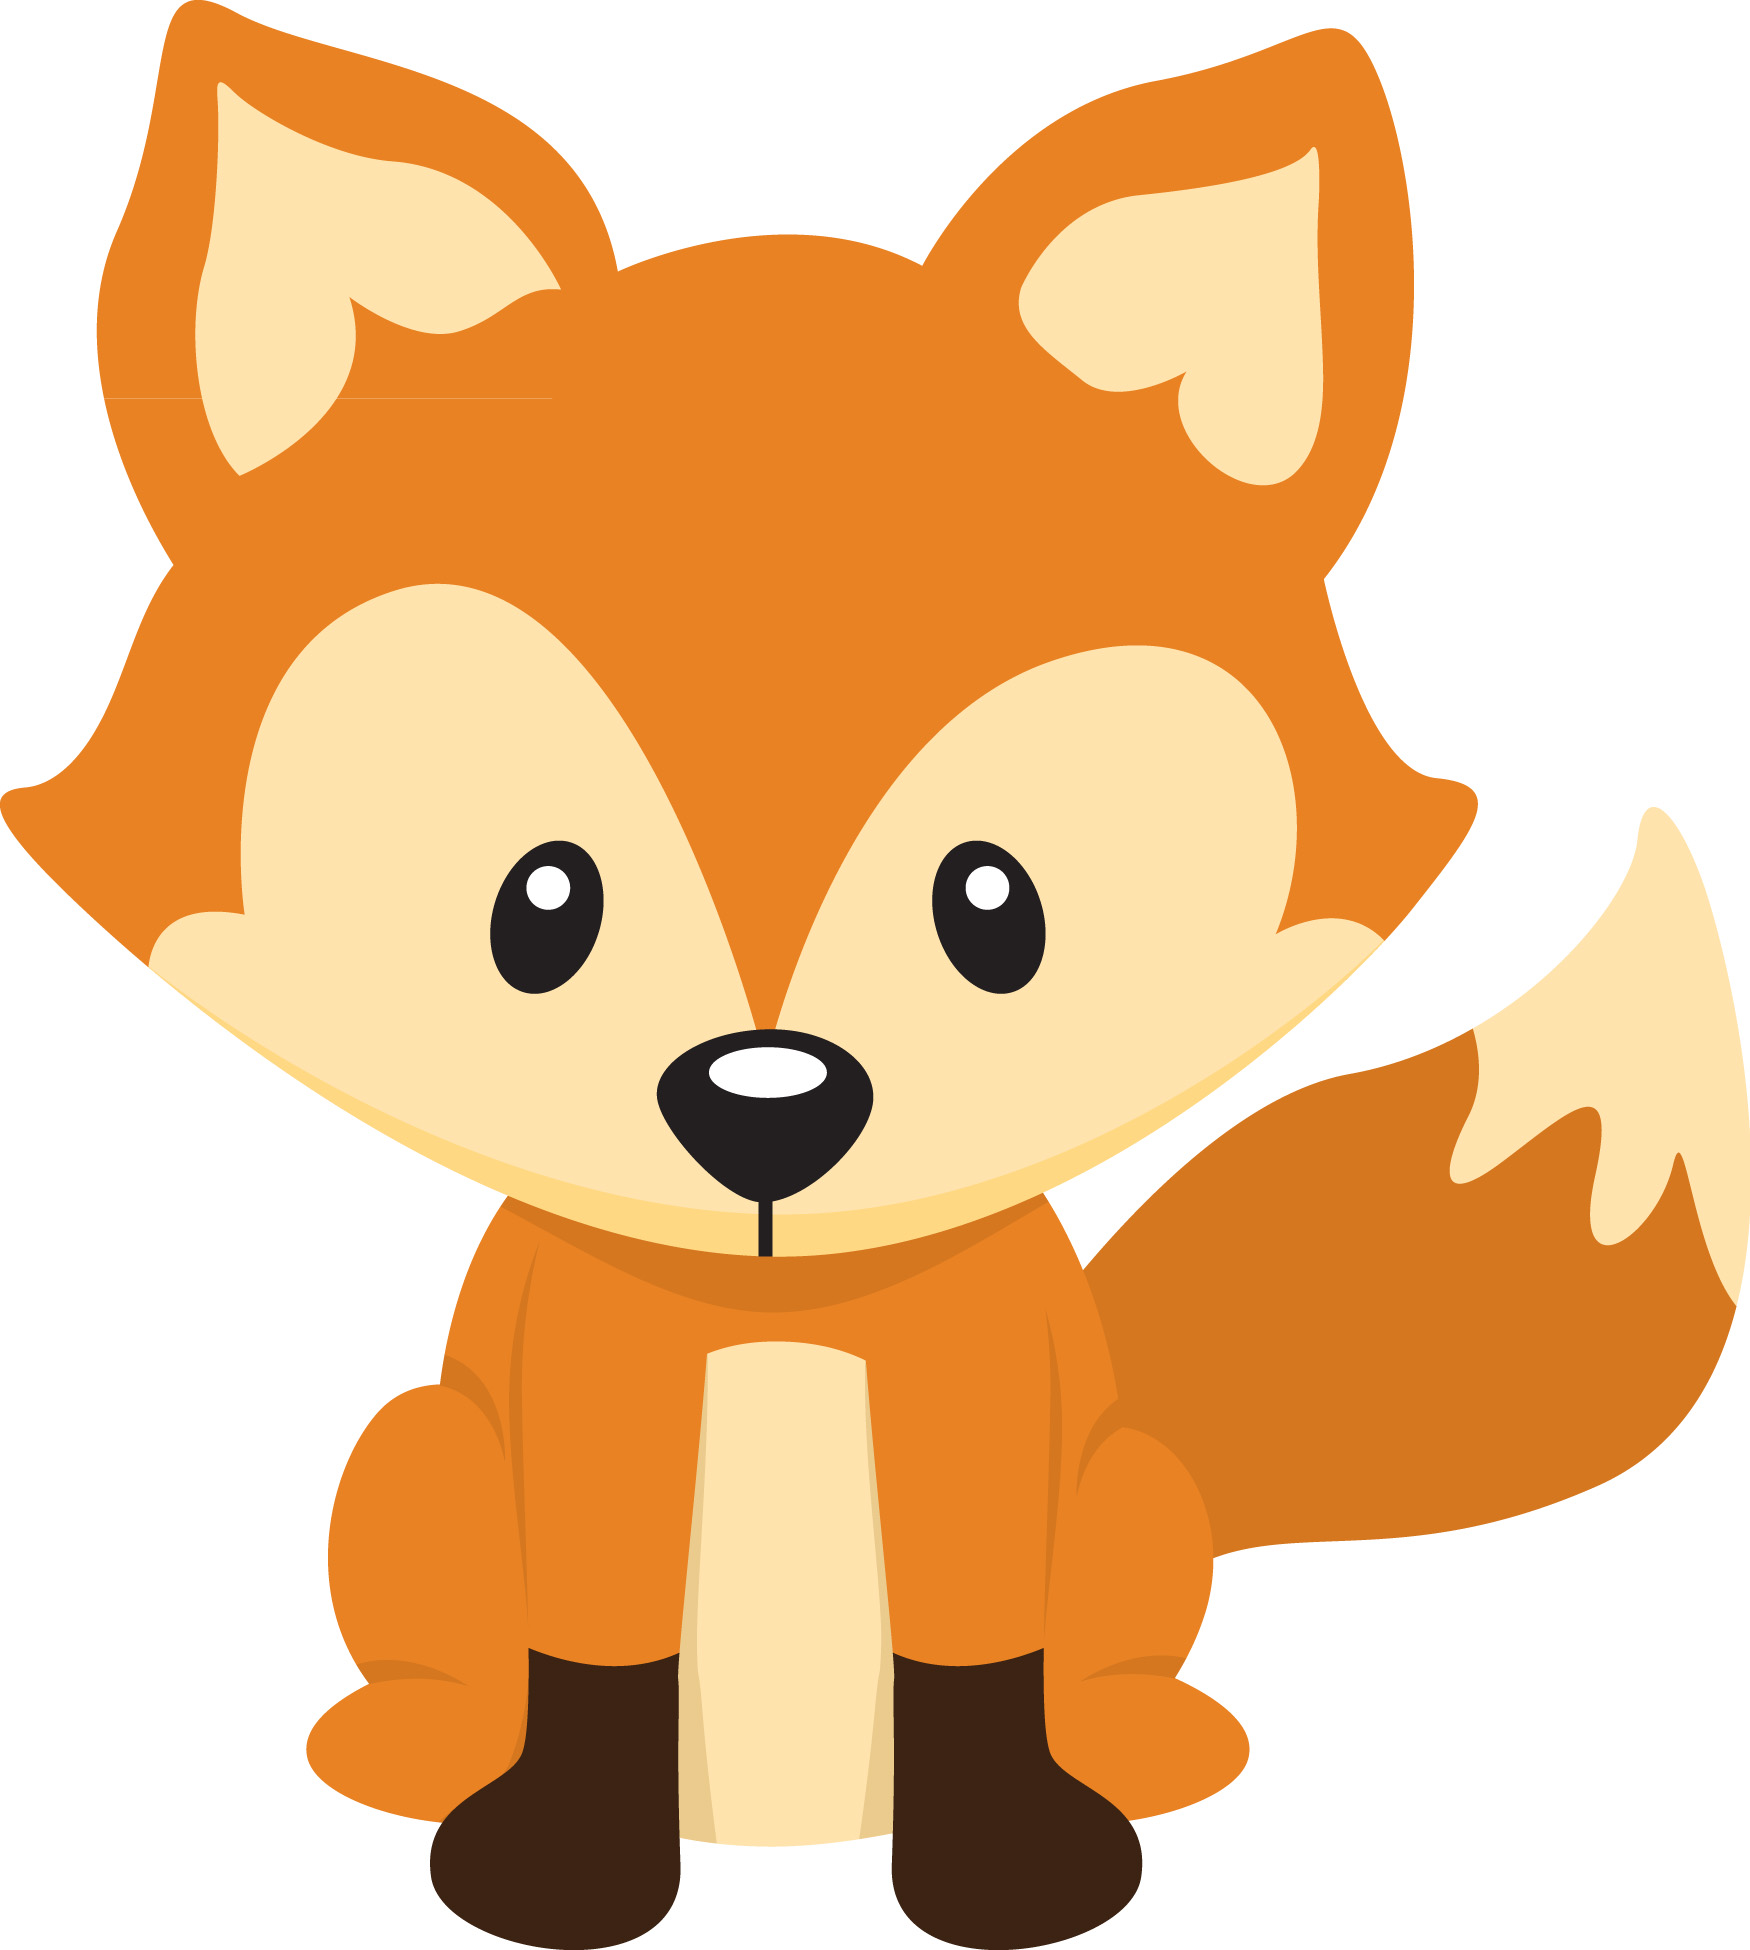 Baby Fox Png - Free Baby Fox Silhouette, Download Free Clip Art, Free Clip Art on ...